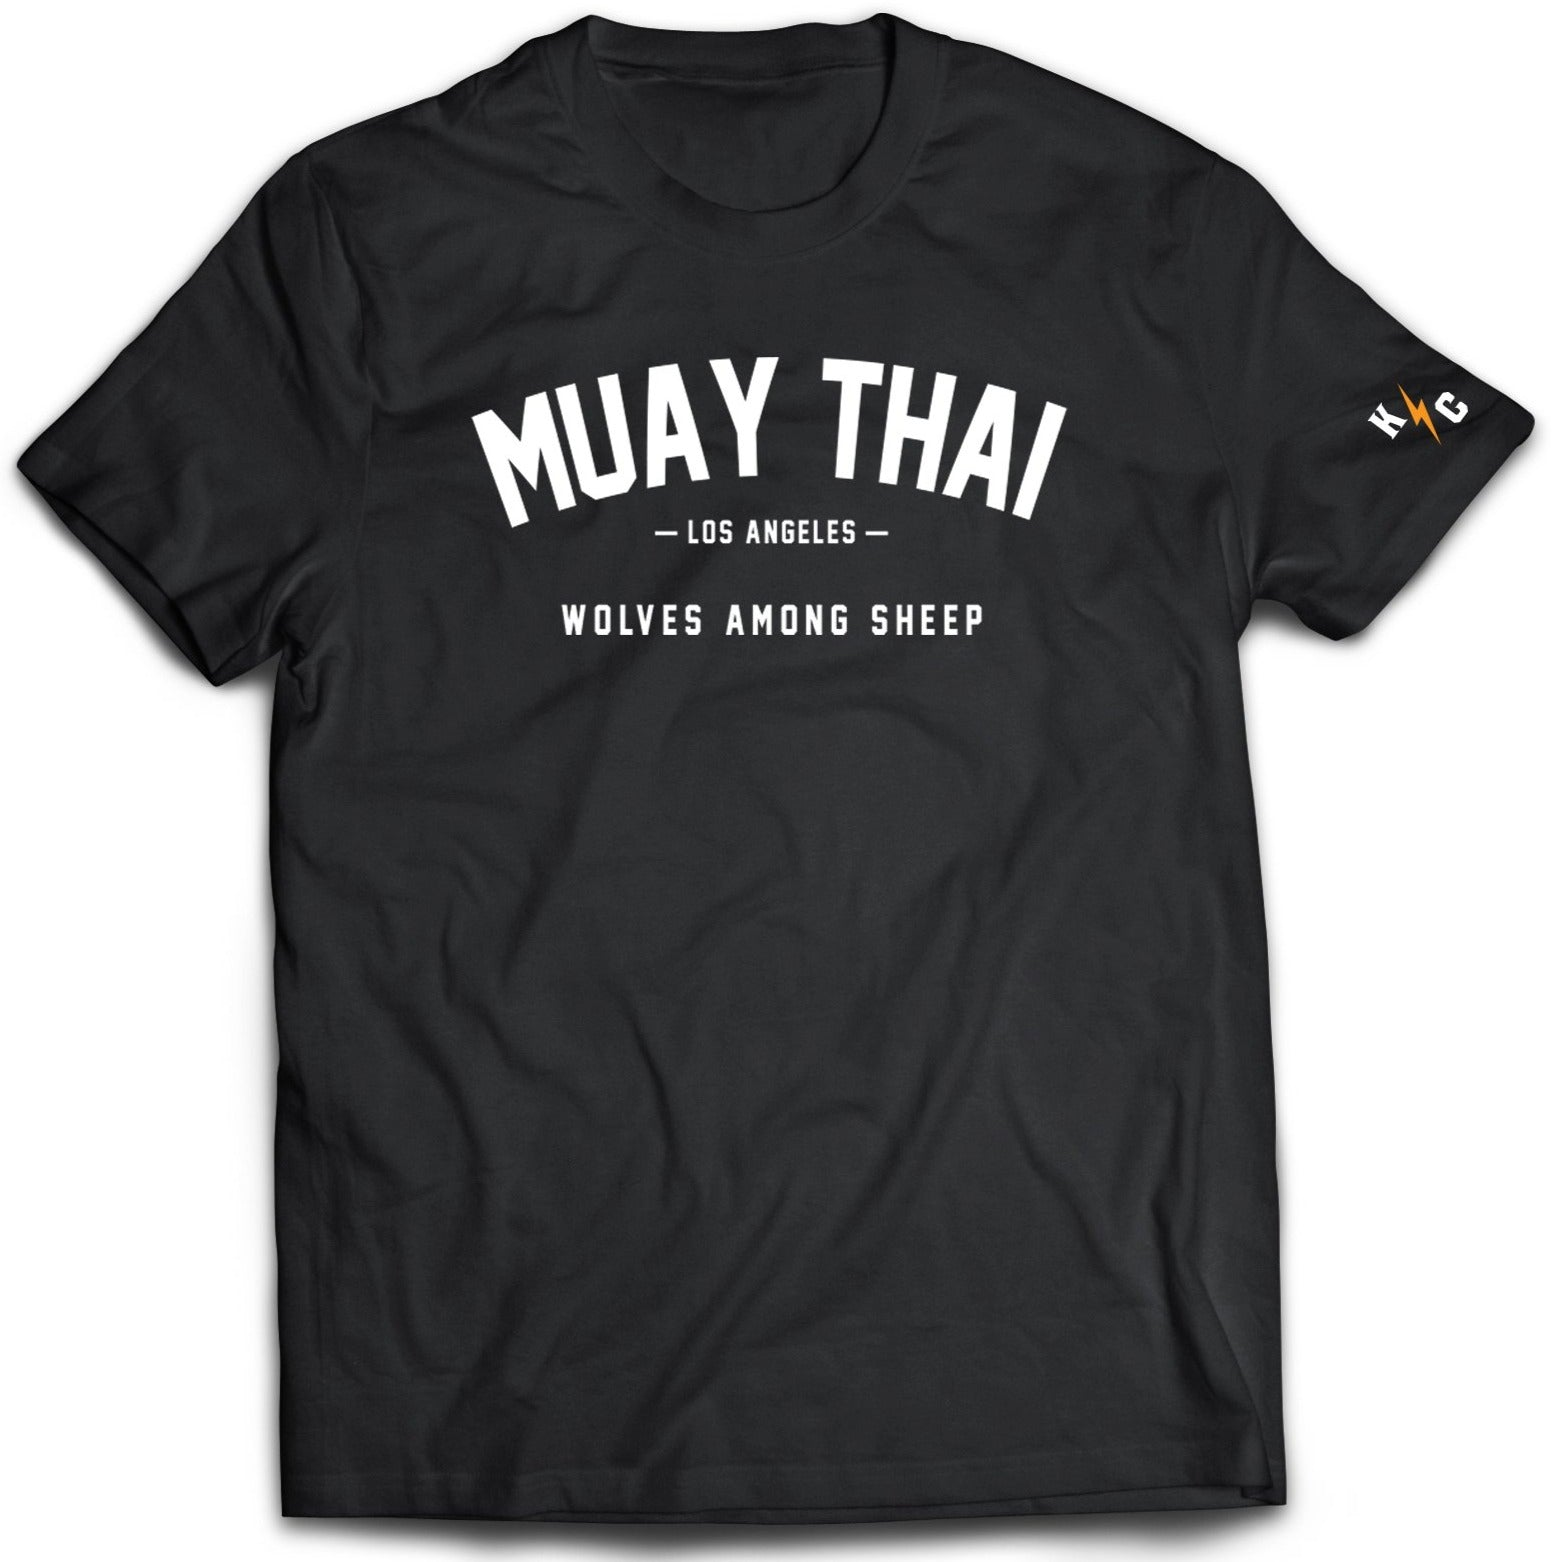 MUAY THAI WOLVES AMONG SHEEP T-SHIRT - BLACK